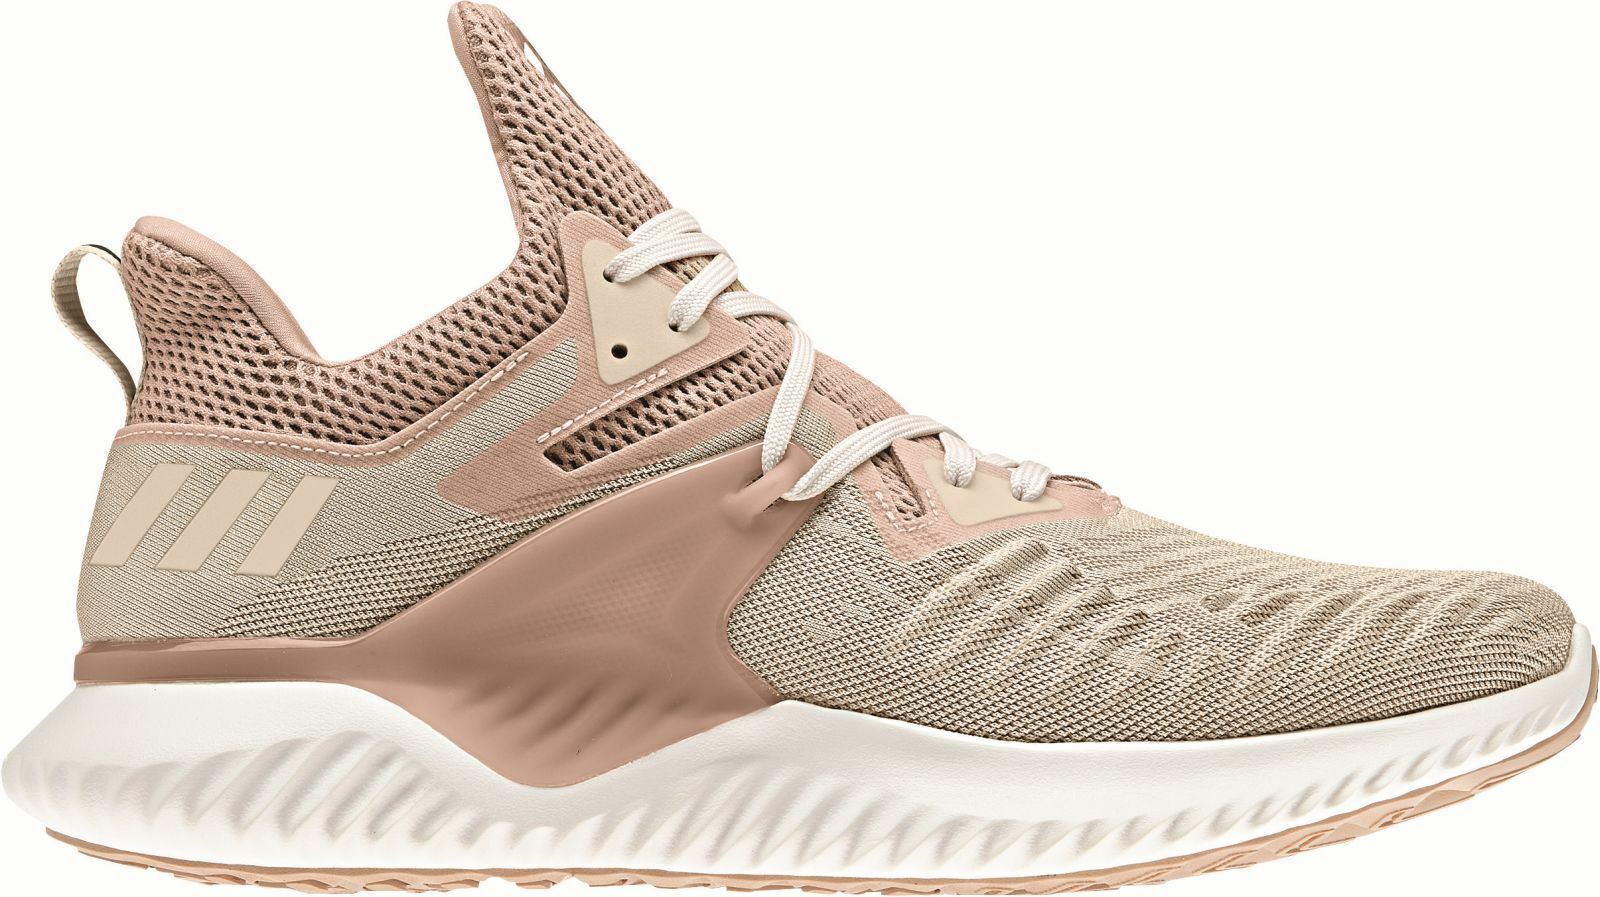 Adidas Men's Running shoes  Alphabounce beyond 2m Beige  save up to 70%